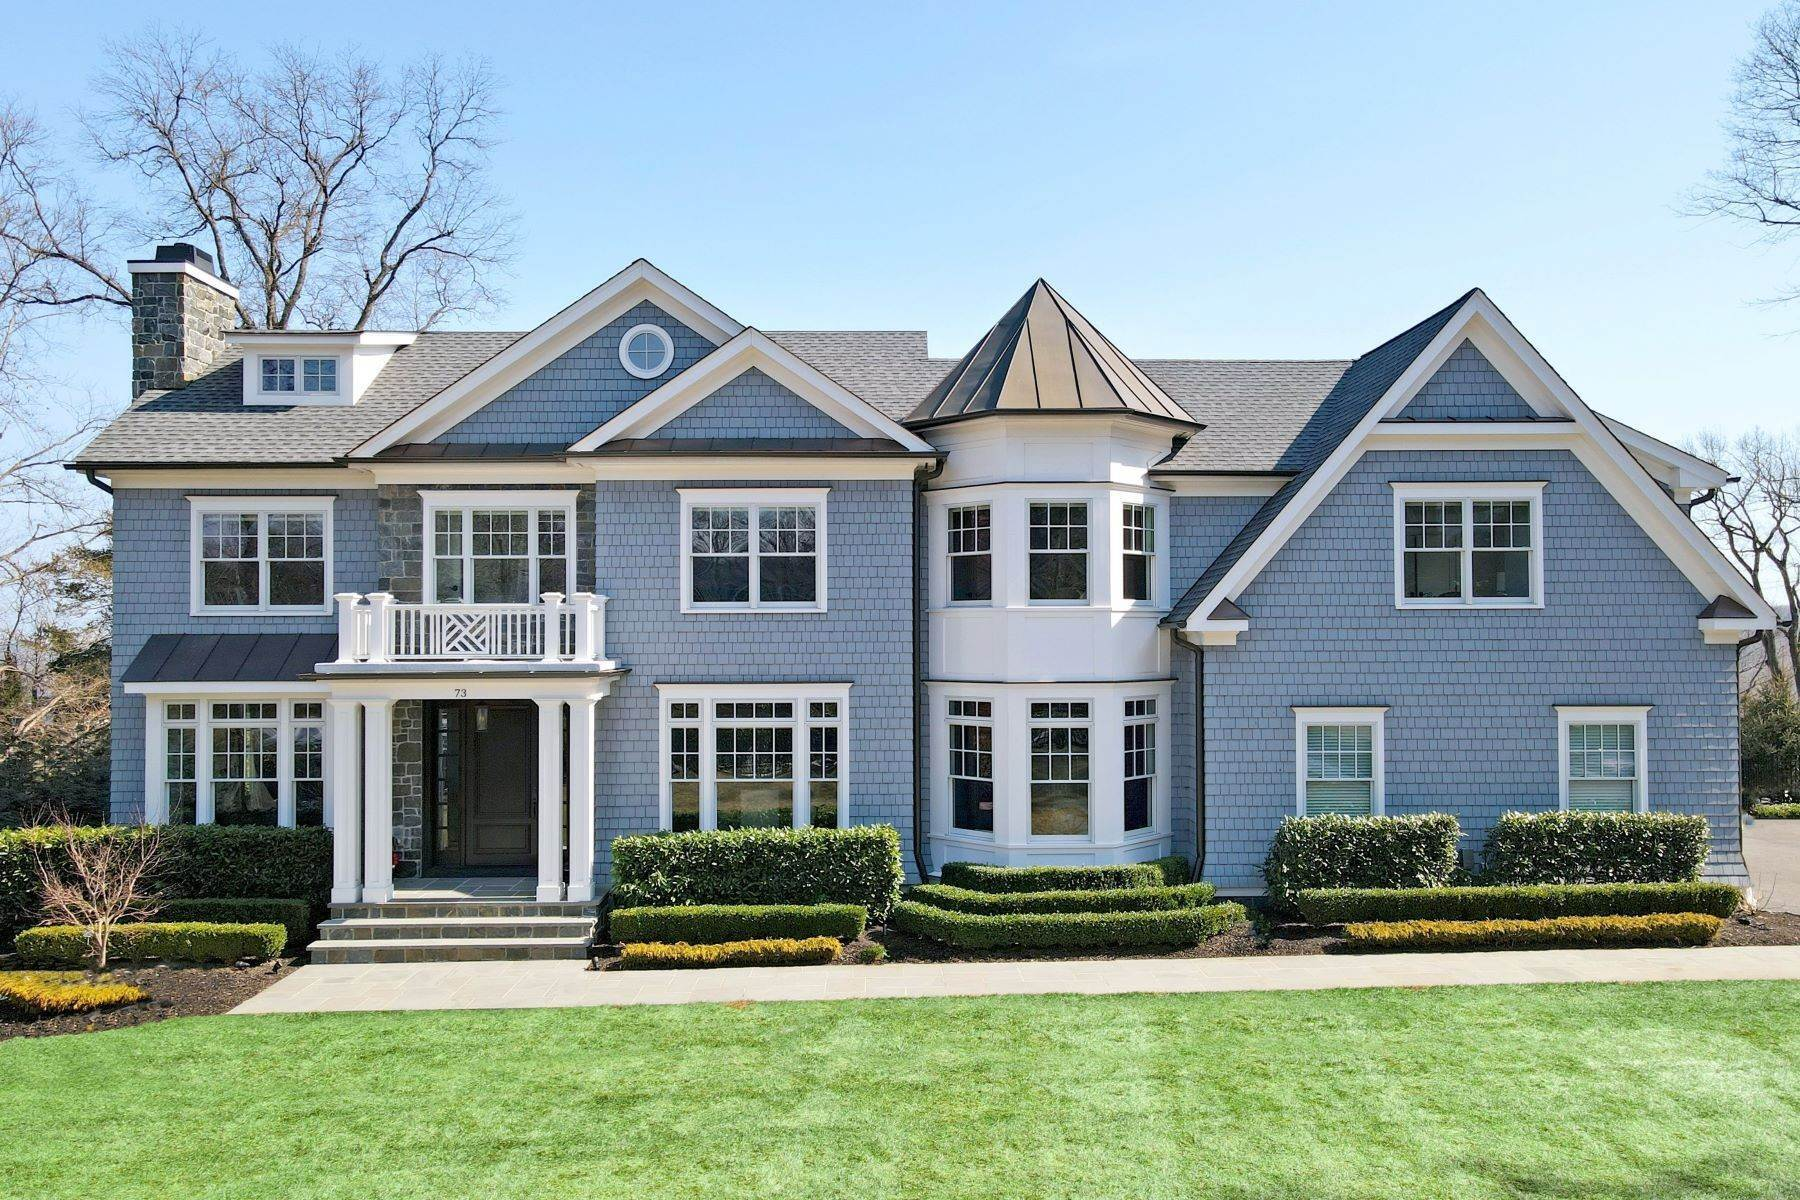 Single Family Homes for Sale at New Construction Masterpiece 73 Edgewood Road, Summit, New Jersey 07901 United States